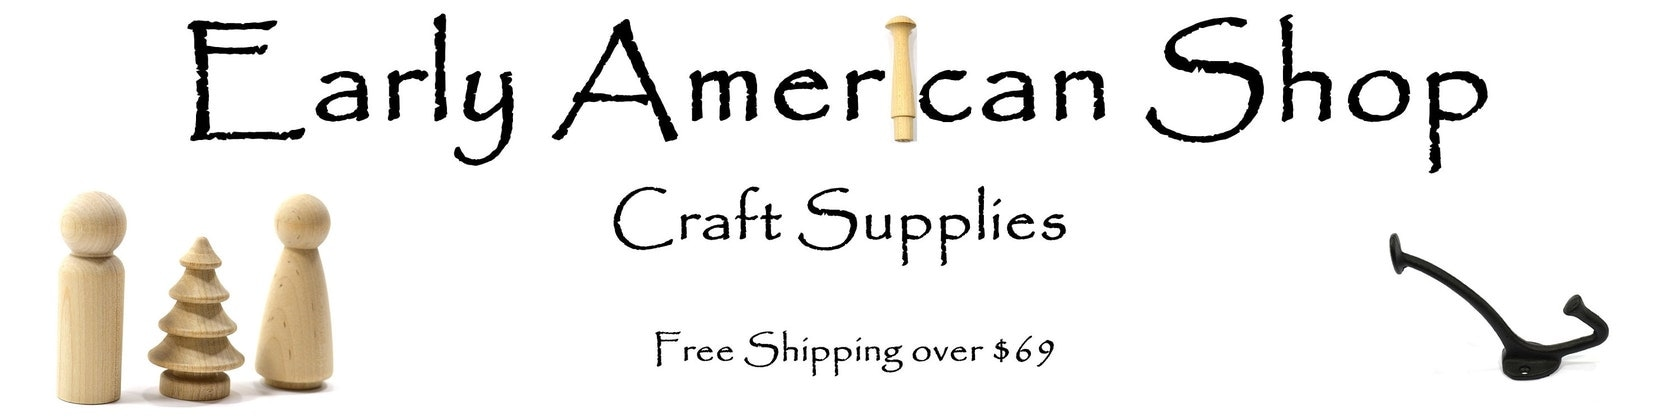 Early American Shop By EarlyAmericanShop On Etsy - How to create a commercial invoice online bead stores